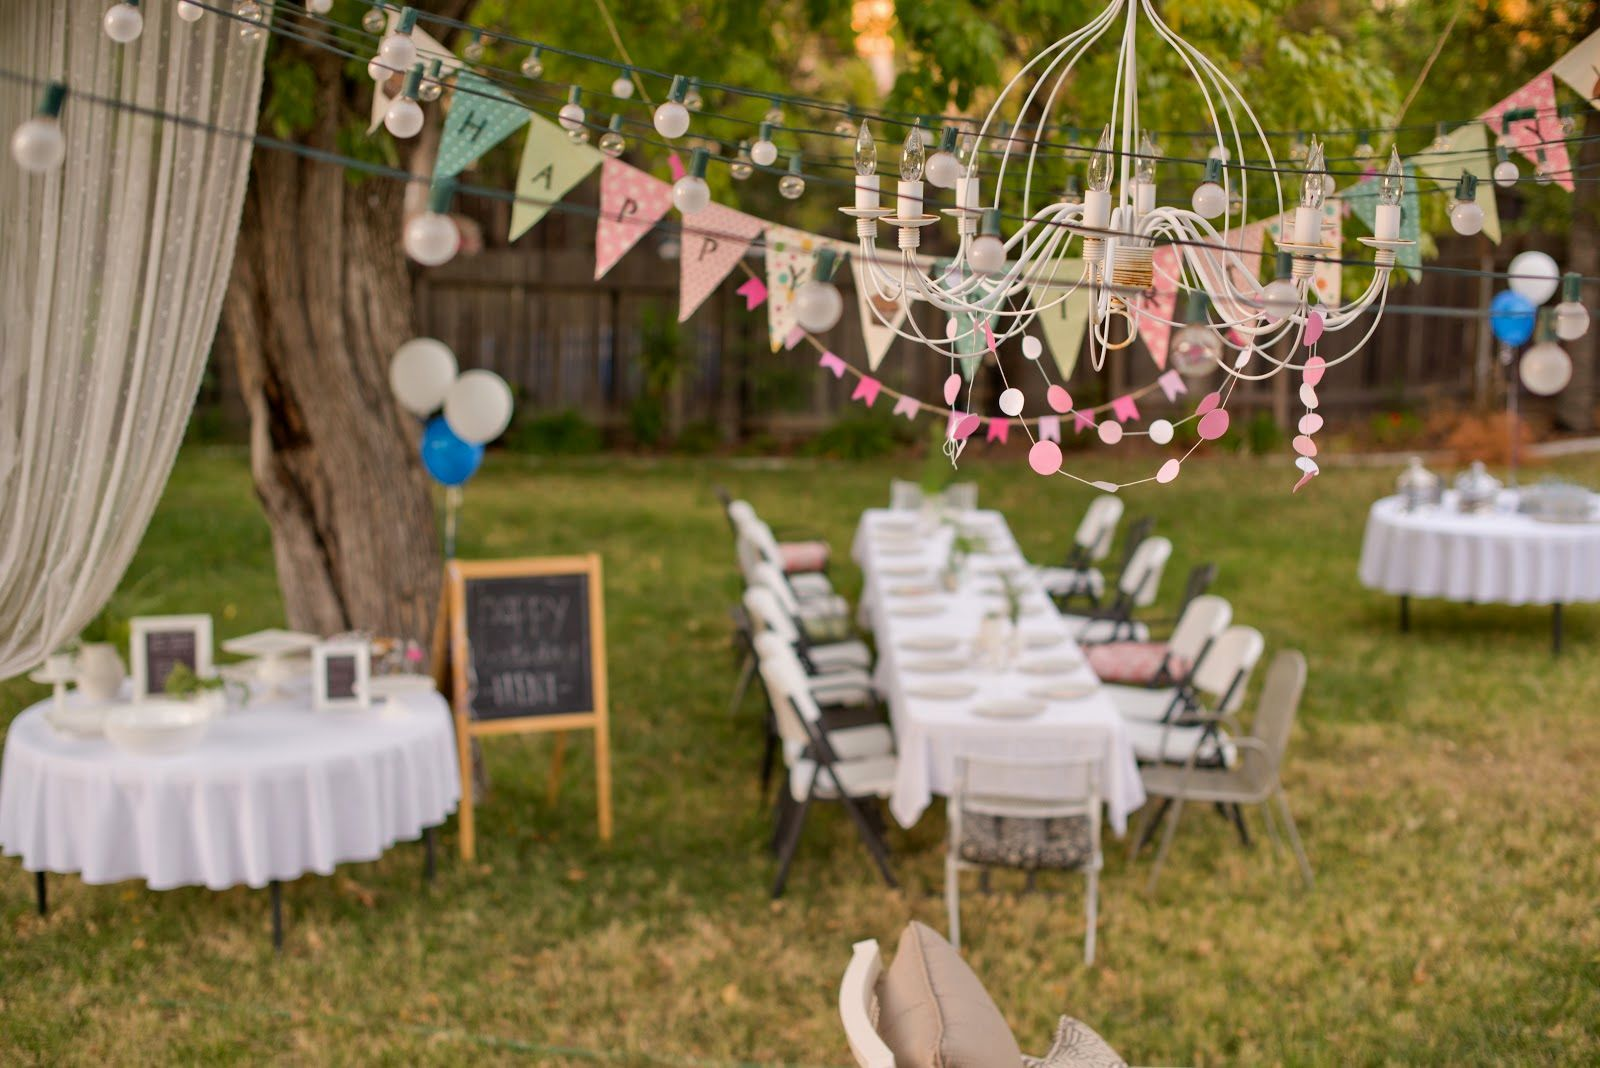 How to Organize a Memorable Outdoor Birthday Party